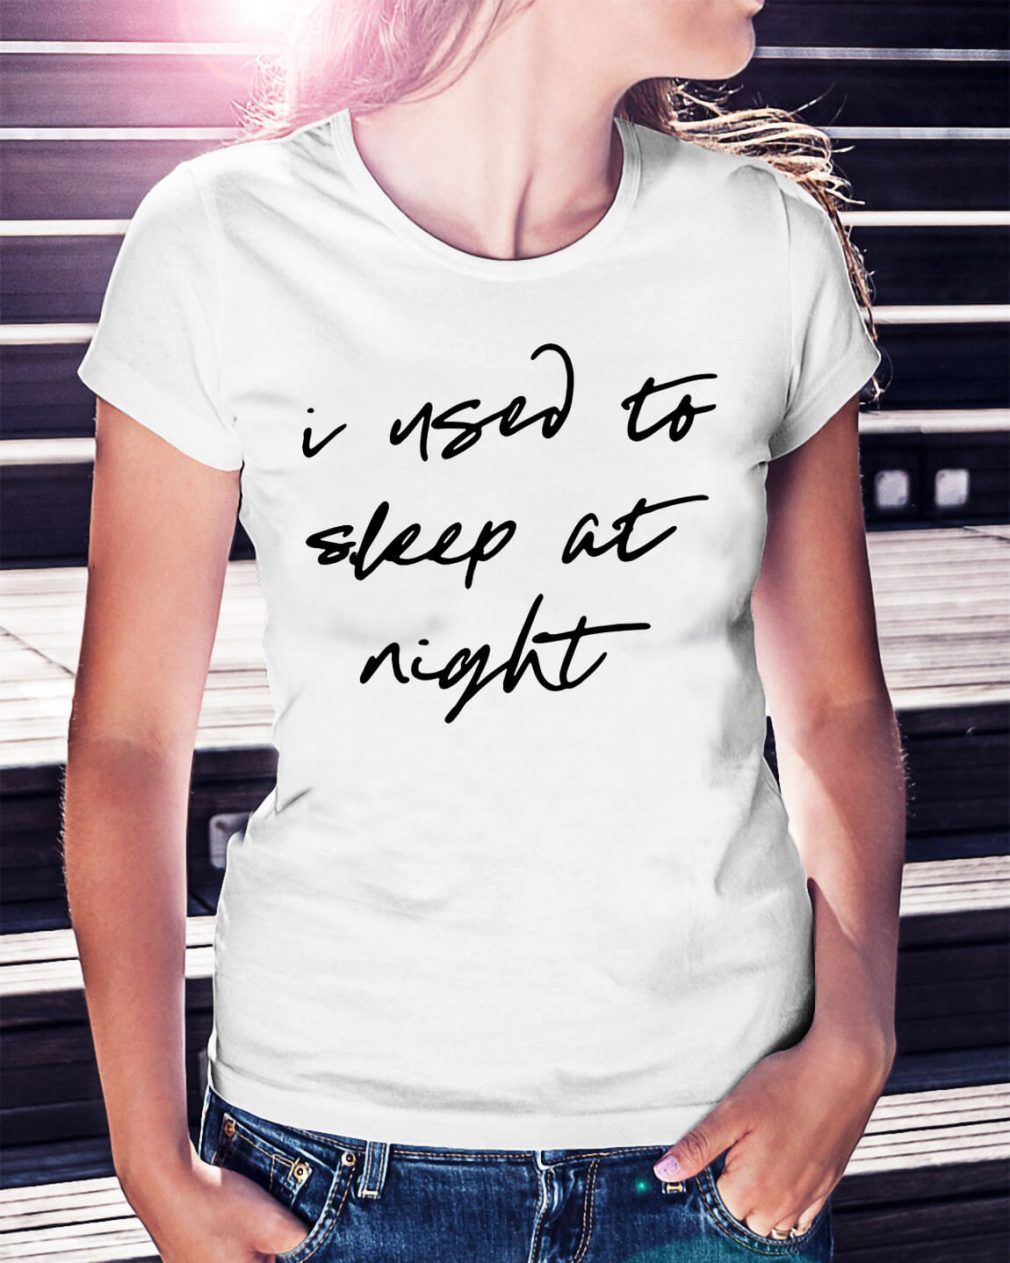 I used to sleep at night shirt